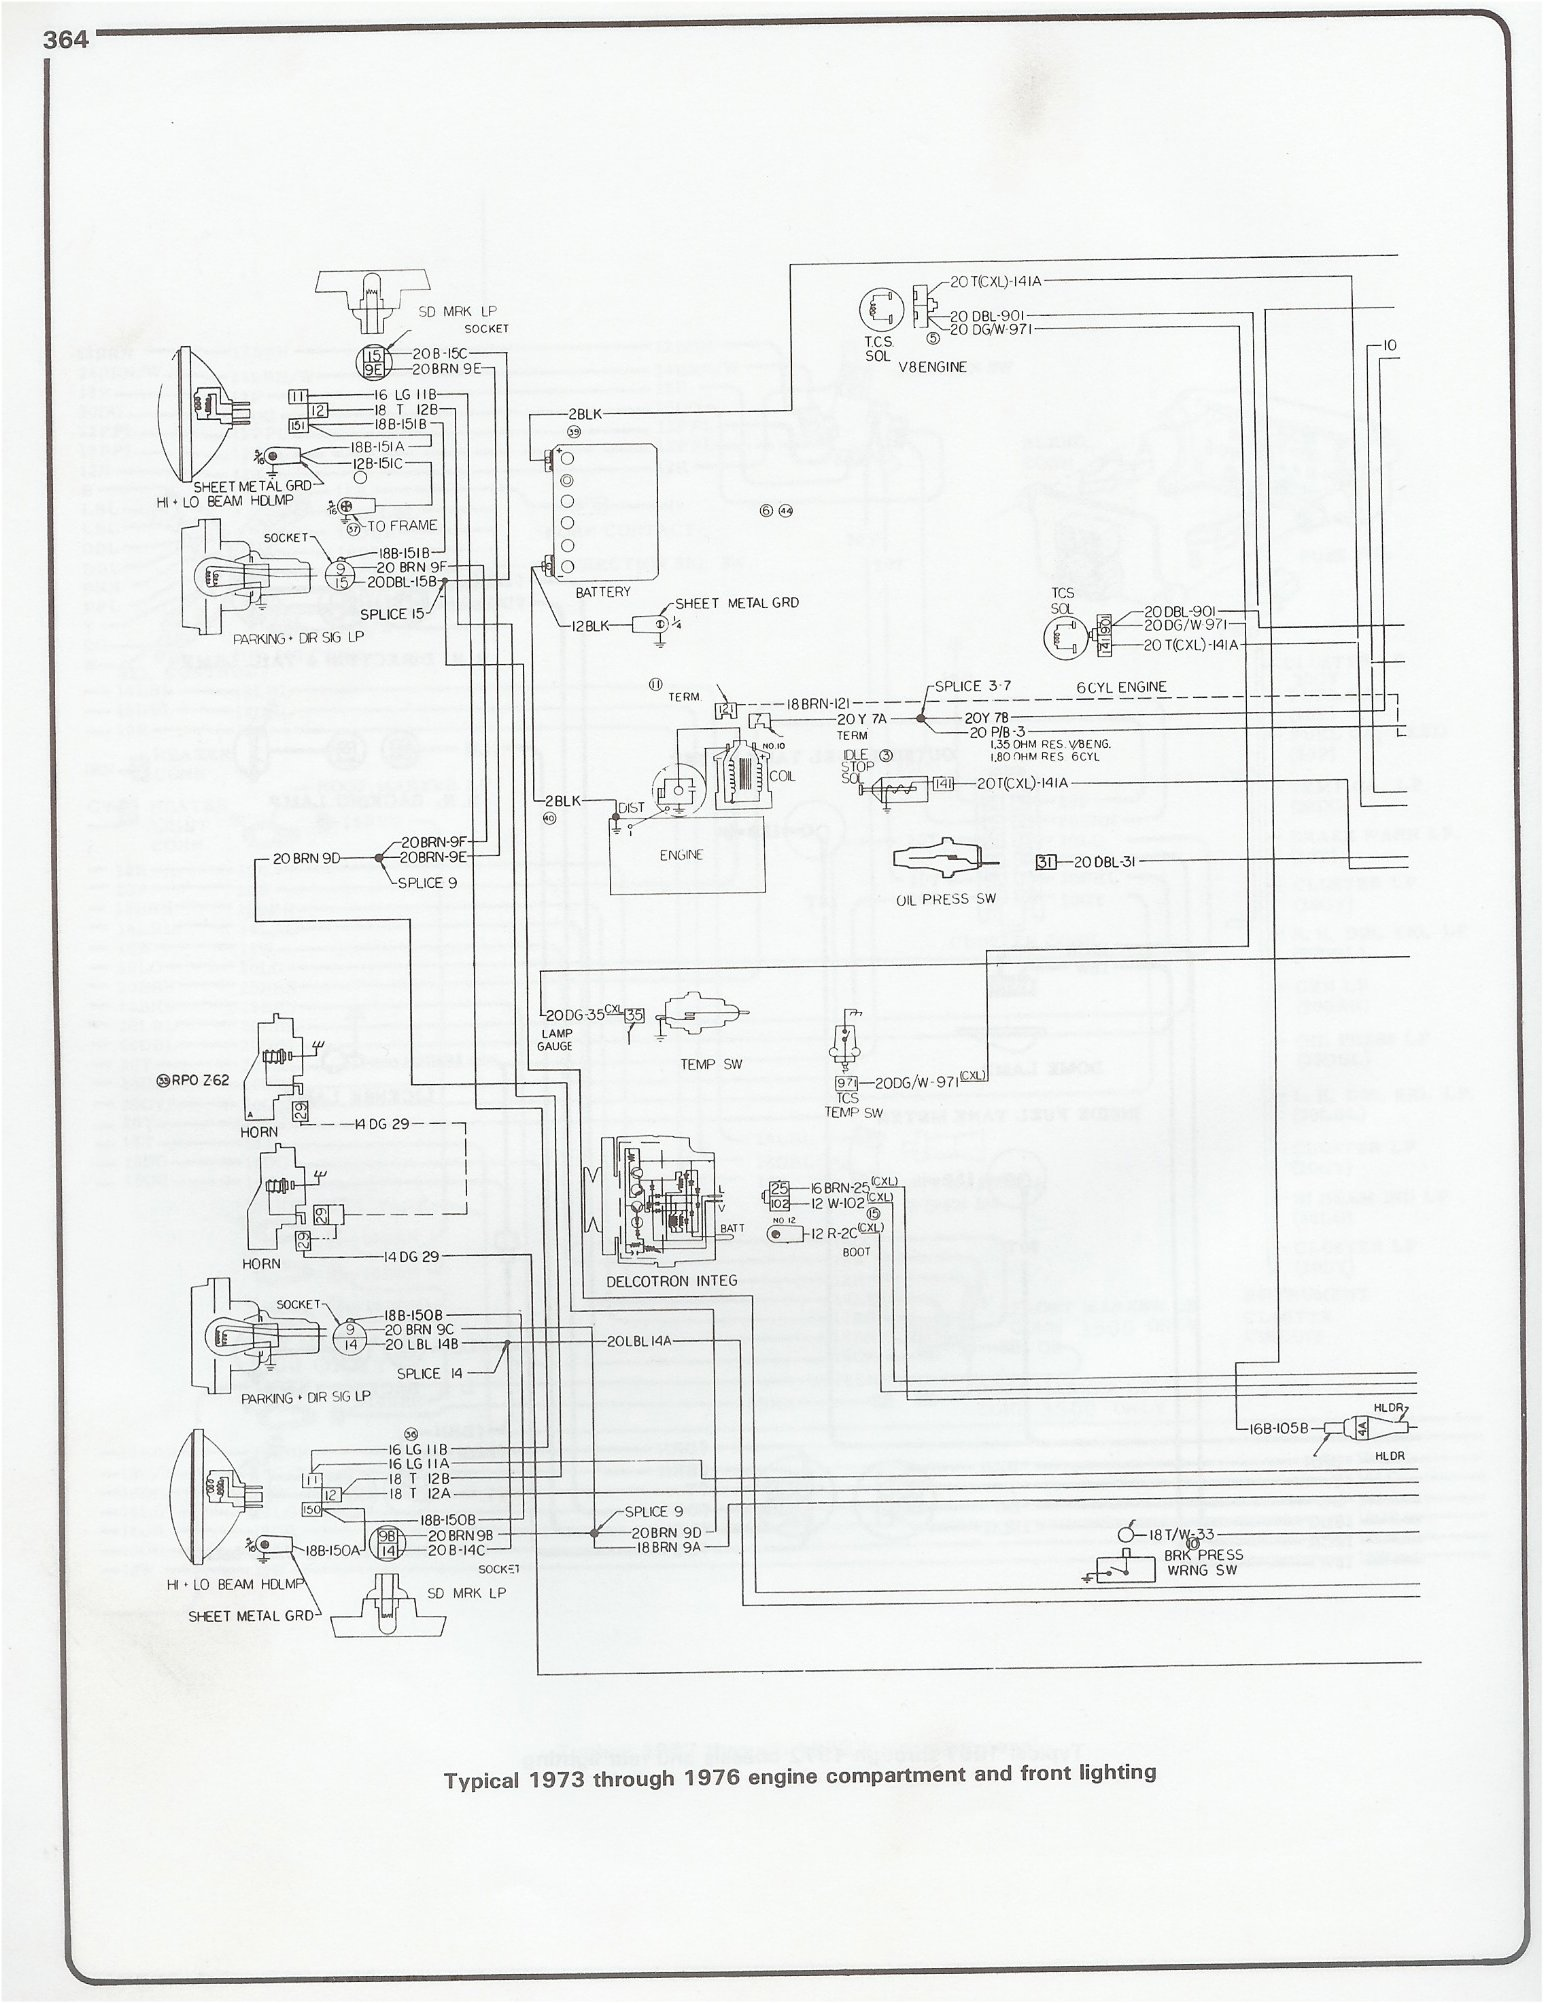 84 chevy blazer headlight wiring diagram schematics wiring diagrams u2022  rh emmawilsher co uk 87 Chevy Wiring Diagram 1987 K5 Blazer Wiring Diagram